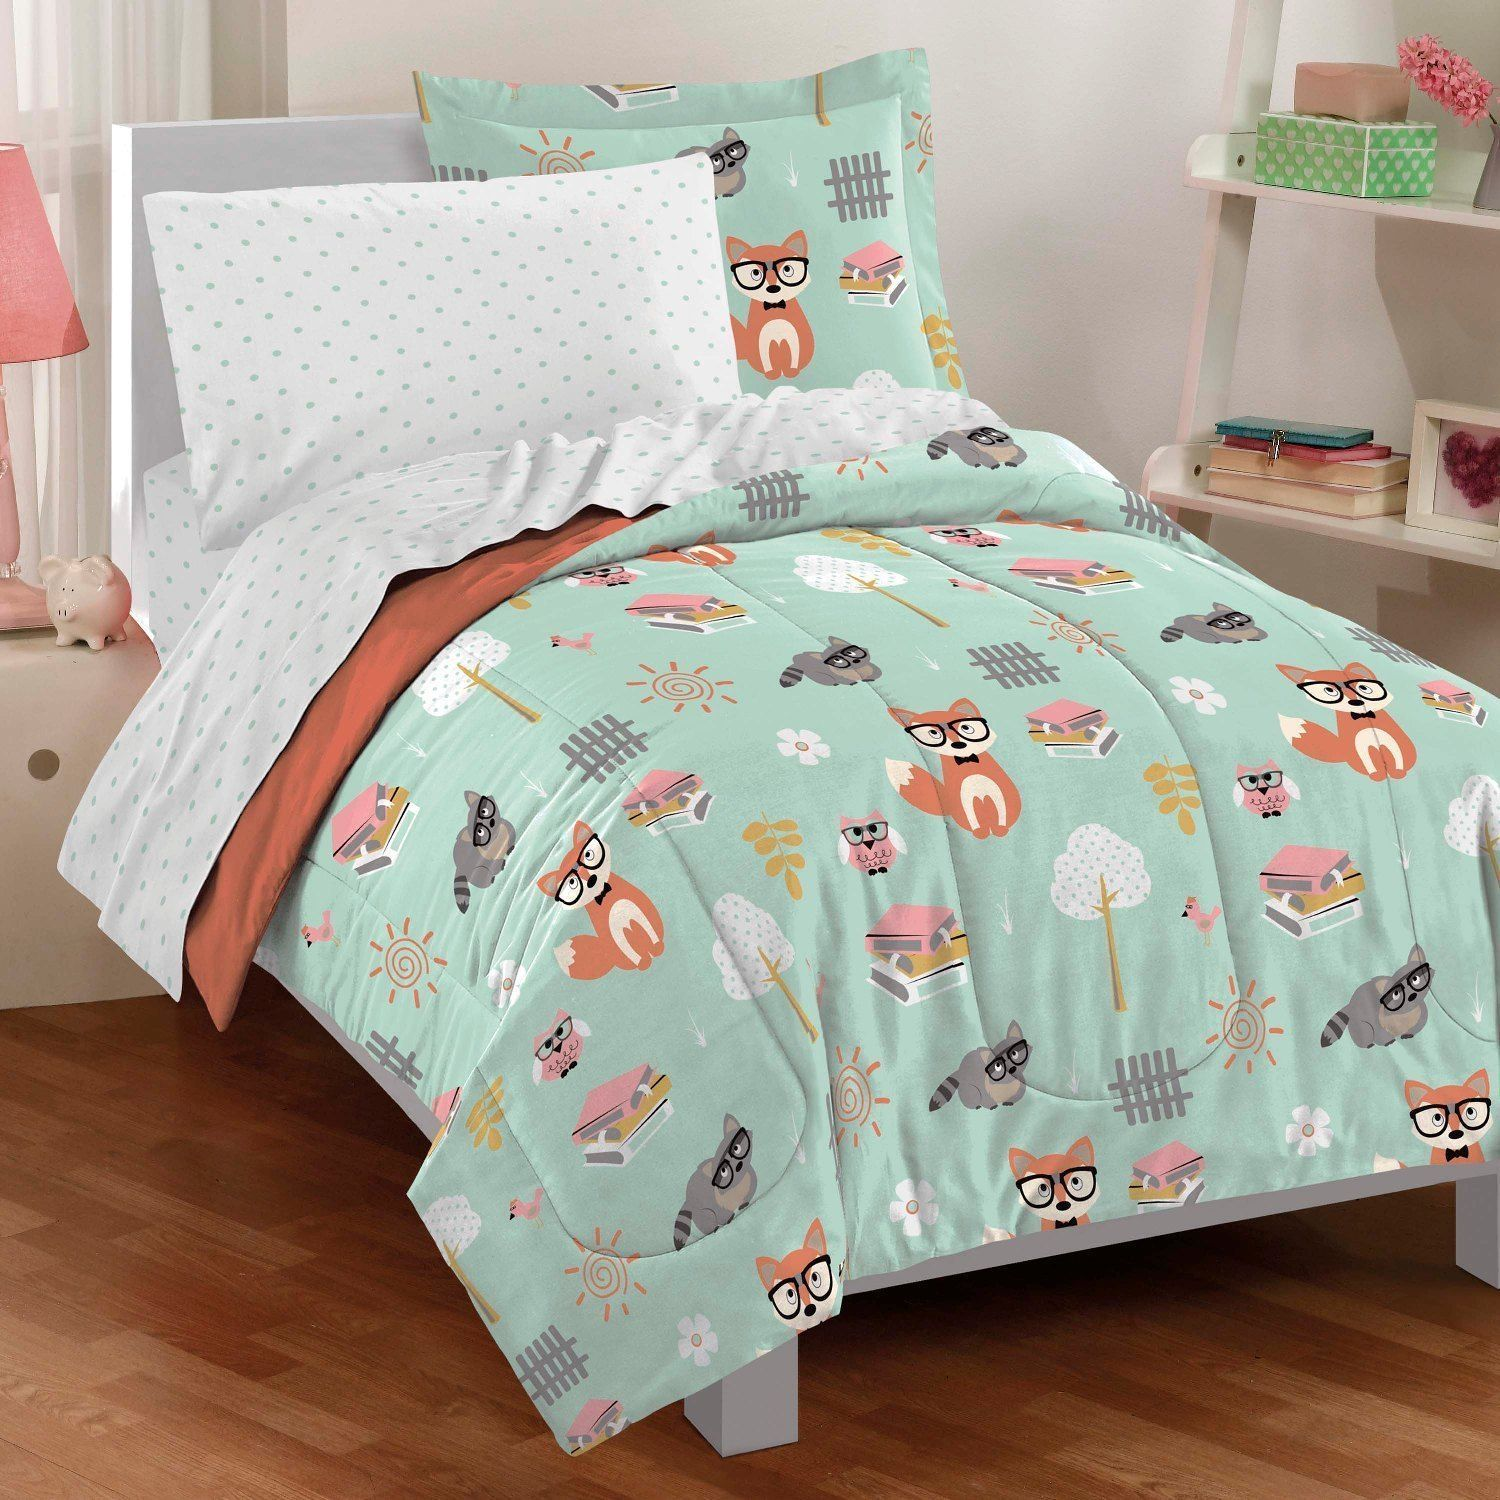 This cute bed in a bag set features woodland animals on a mint ...